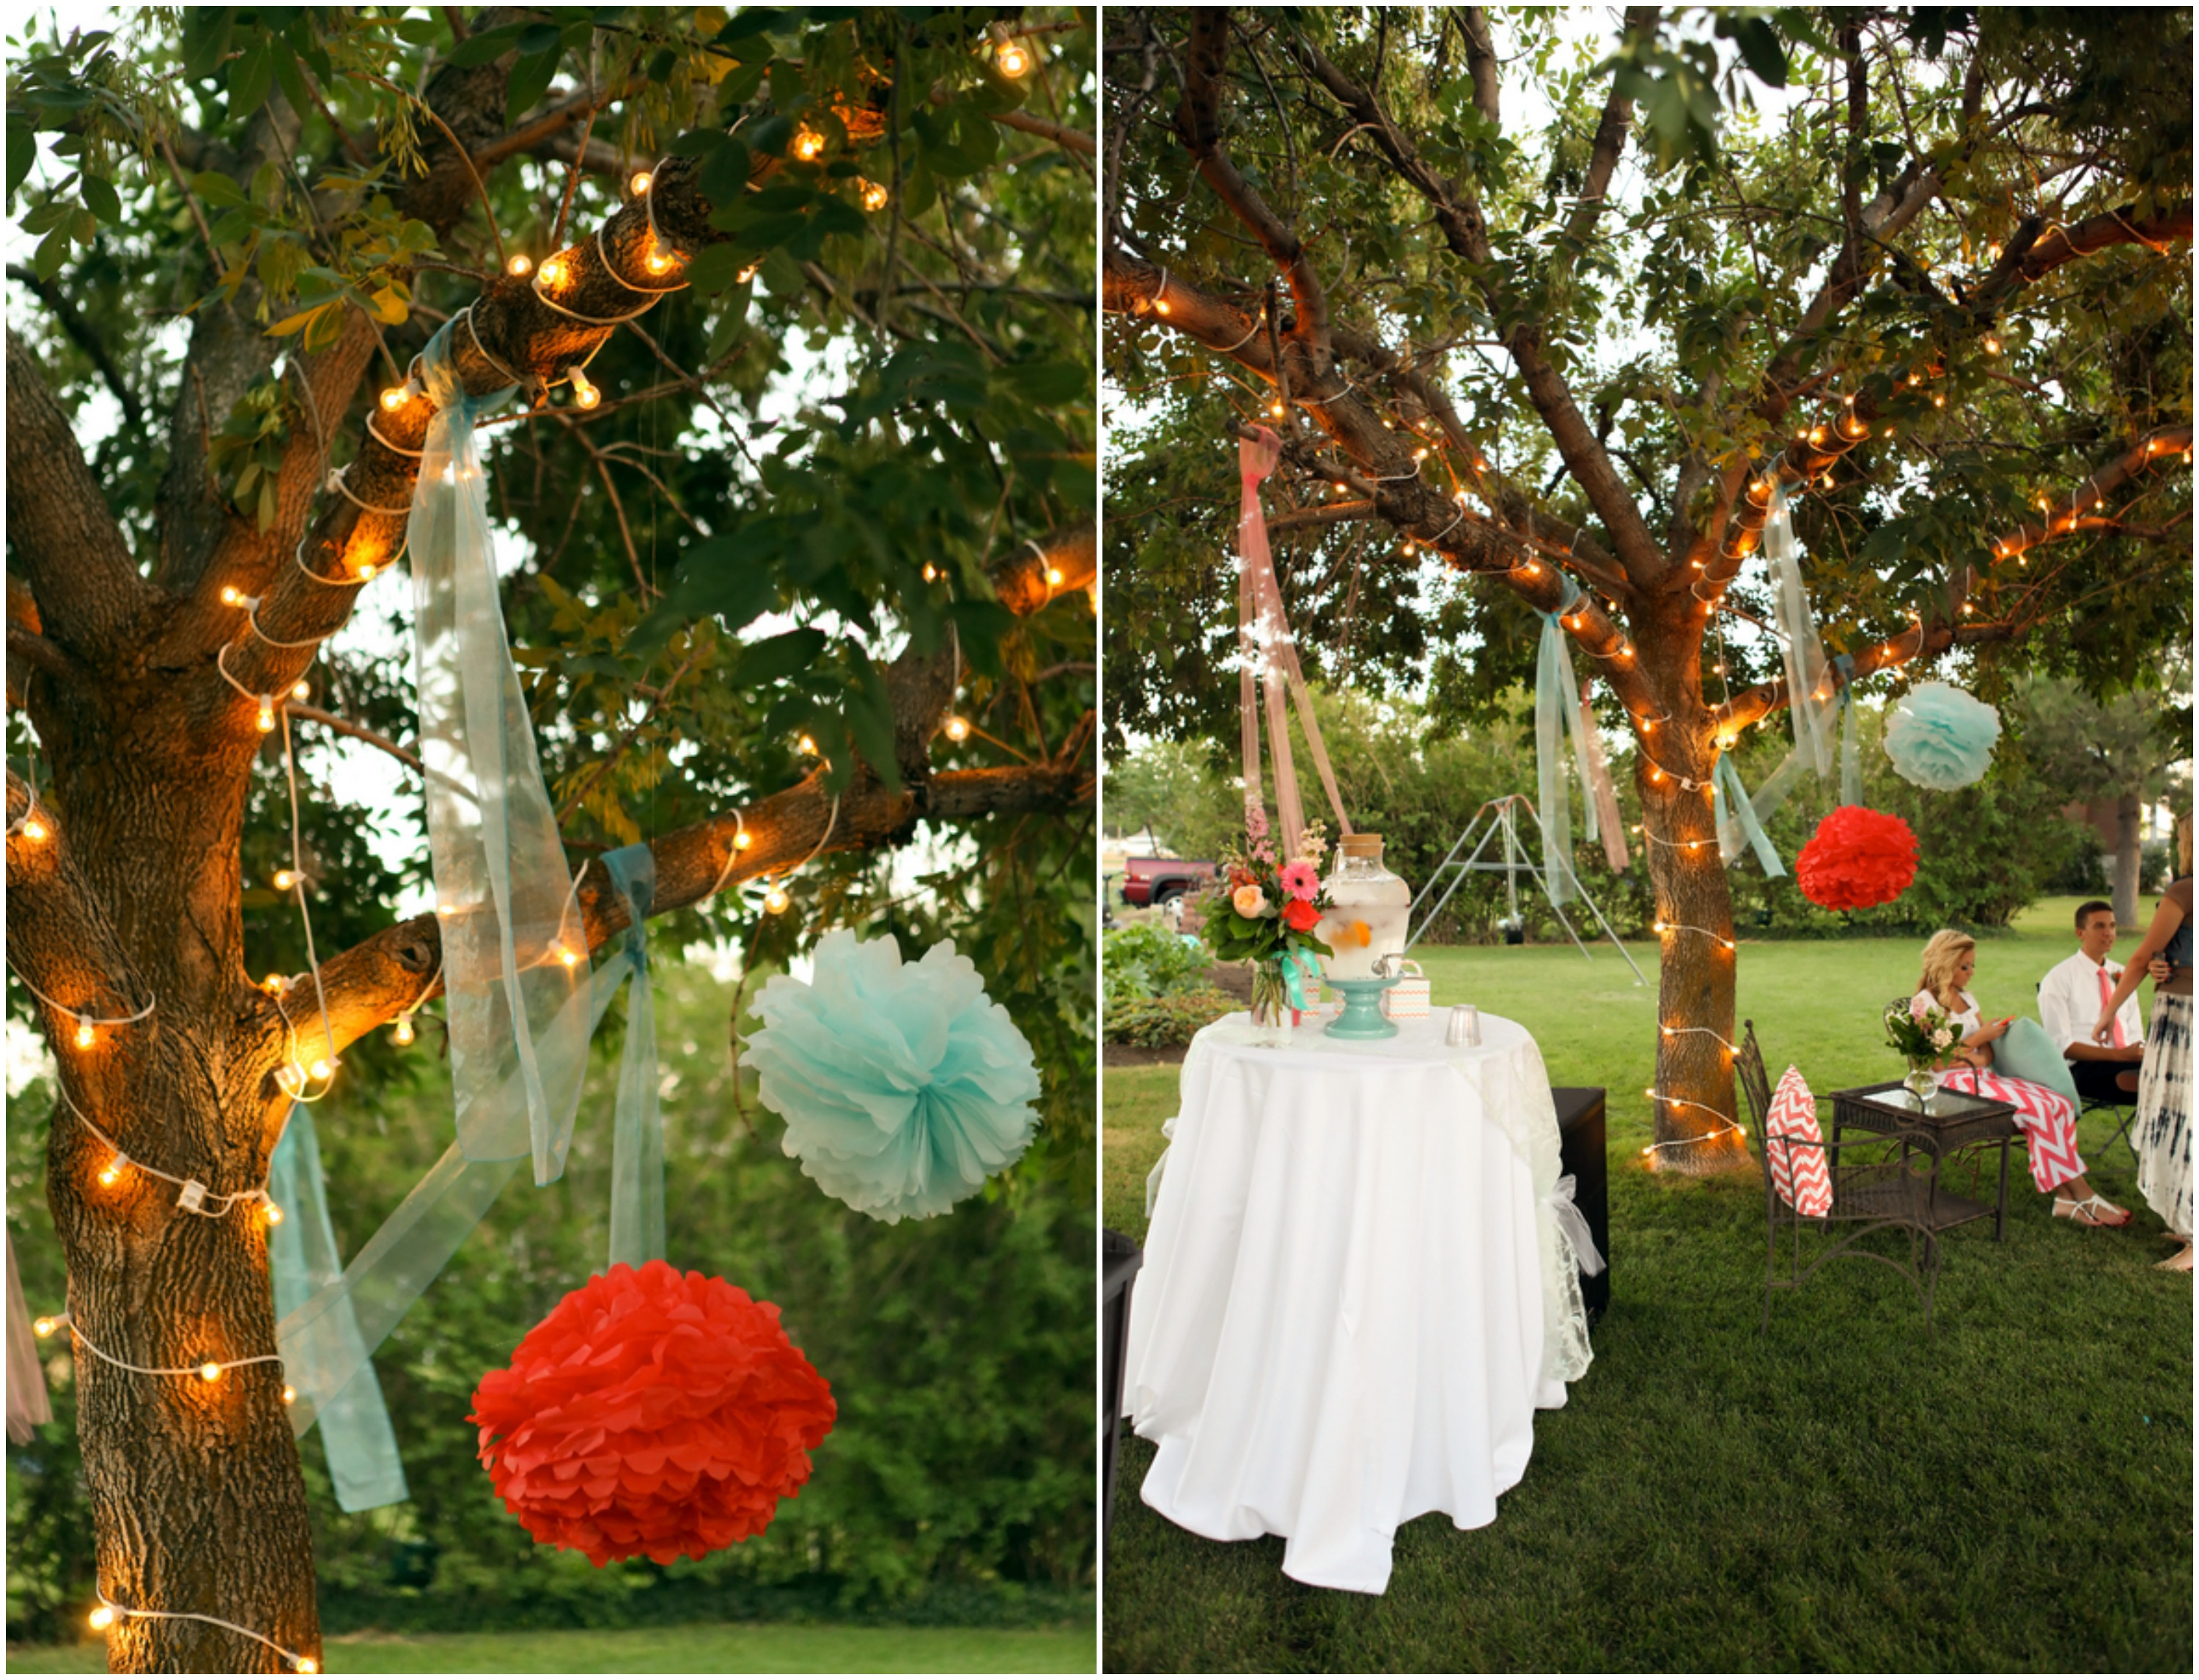 Rustic Backyard Wedding Reception Ideas : colorful backyard wedding rustic wedding chic backyard wedding ideas